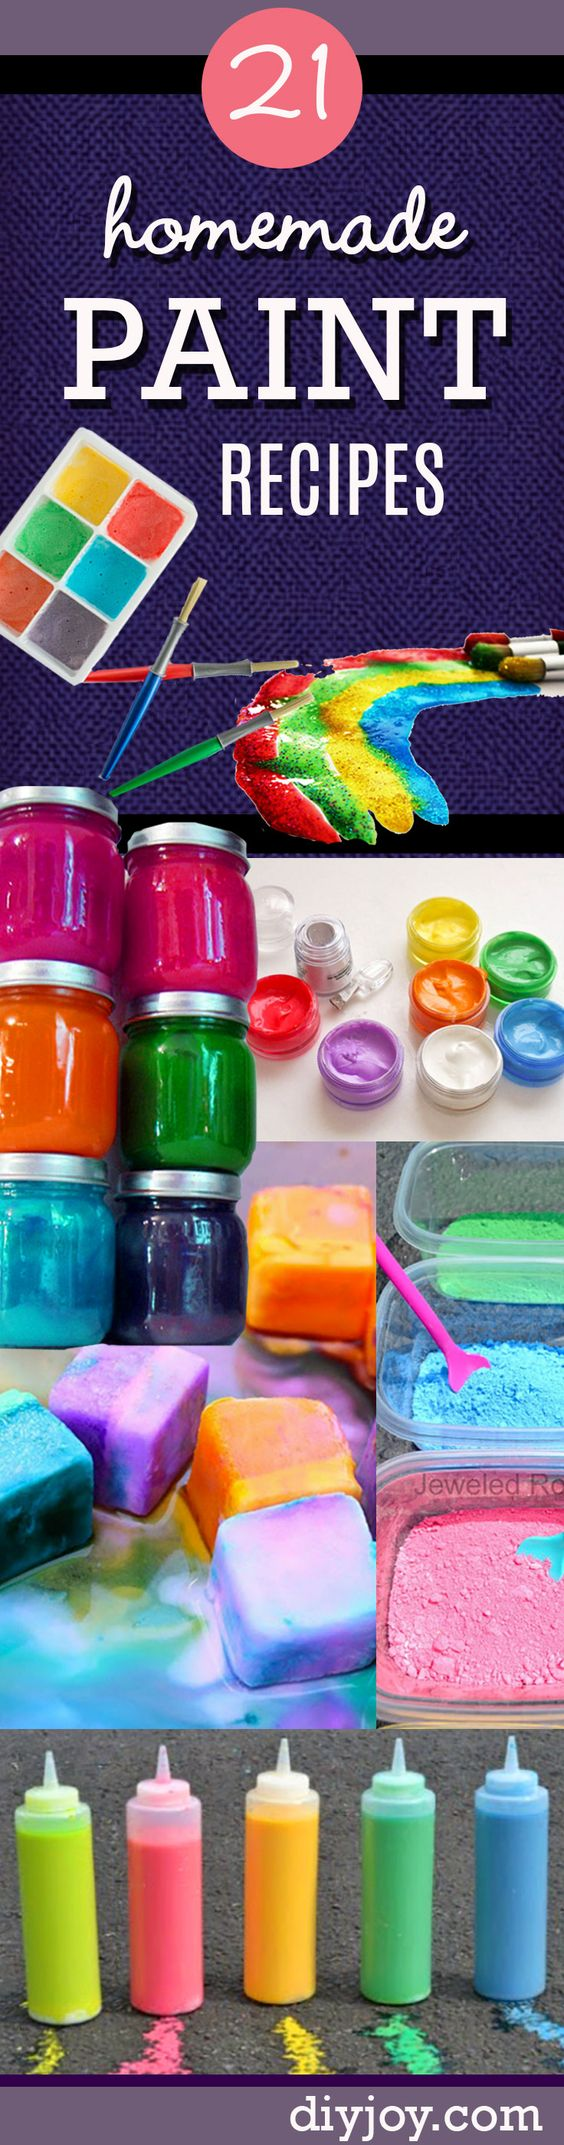 21 easy diy paint recipes your kids will go crazy for for Crafts to make at home